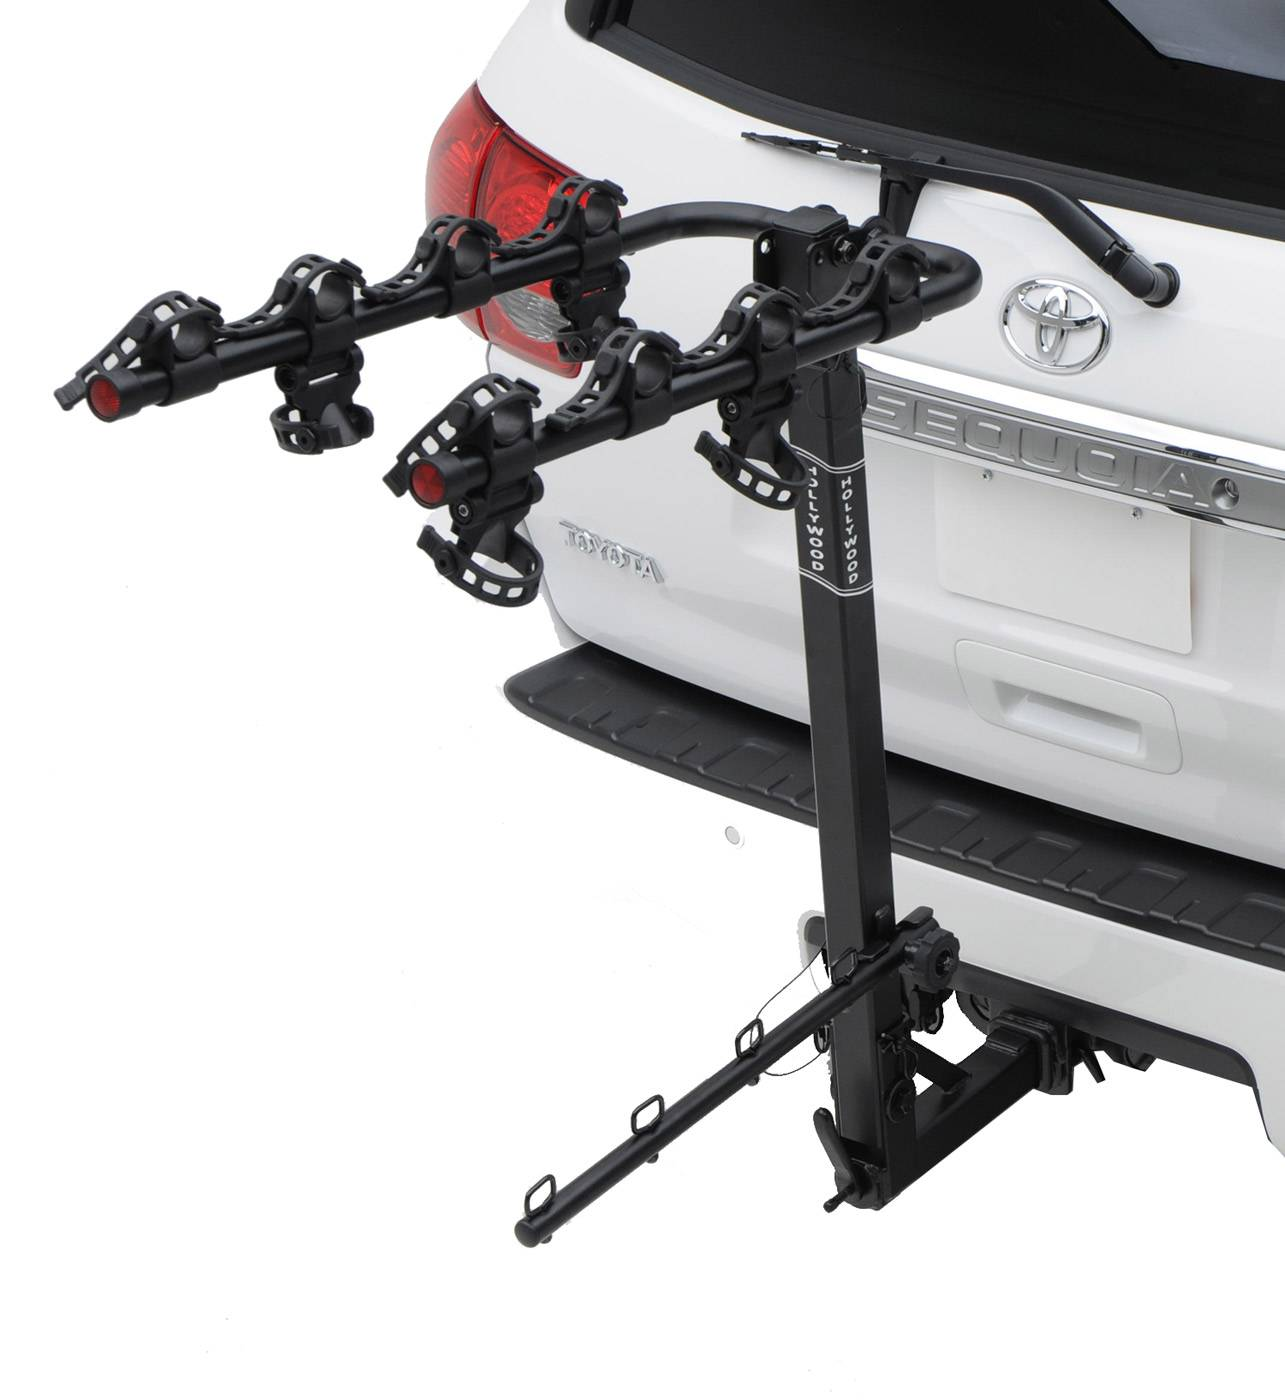 racks hollywood com etrailer carrier review express watch bike rack